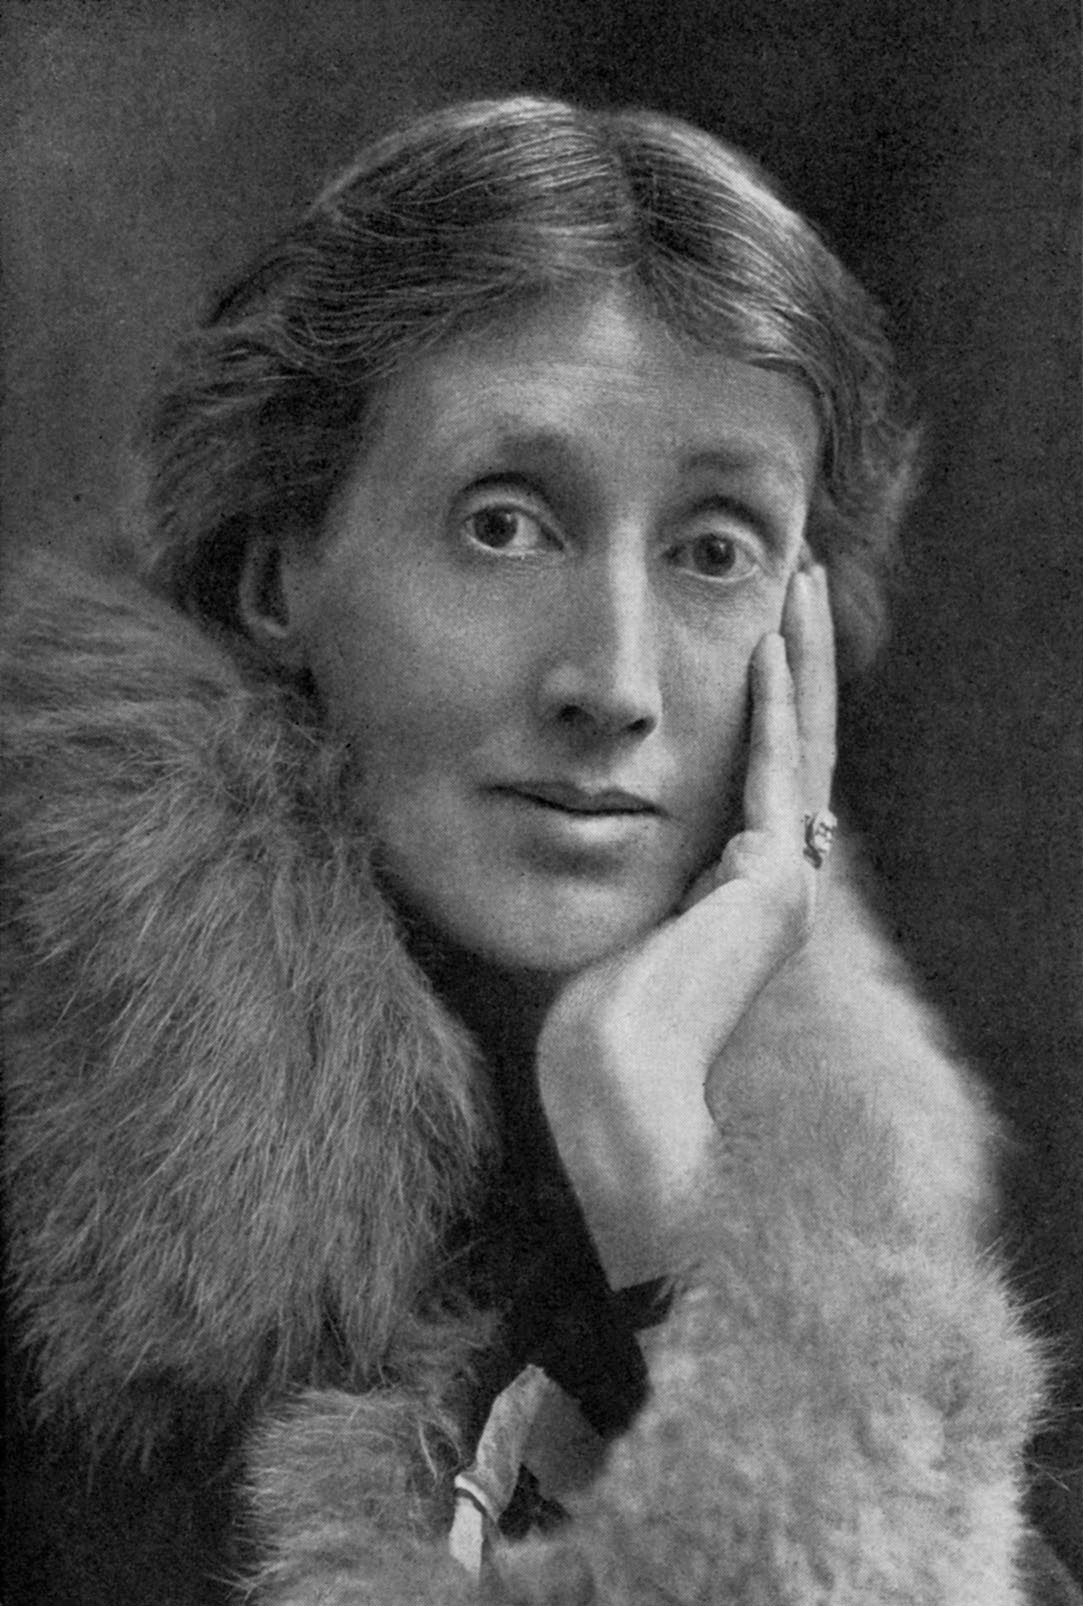 National Portrait Gallery announces new Virginia Woolf exhibition at http://www.independent.co.uk/arts-entertainment/books/news/national-portrait-gallery-announces-new-virginia-woolf-exhibition-9236574.html